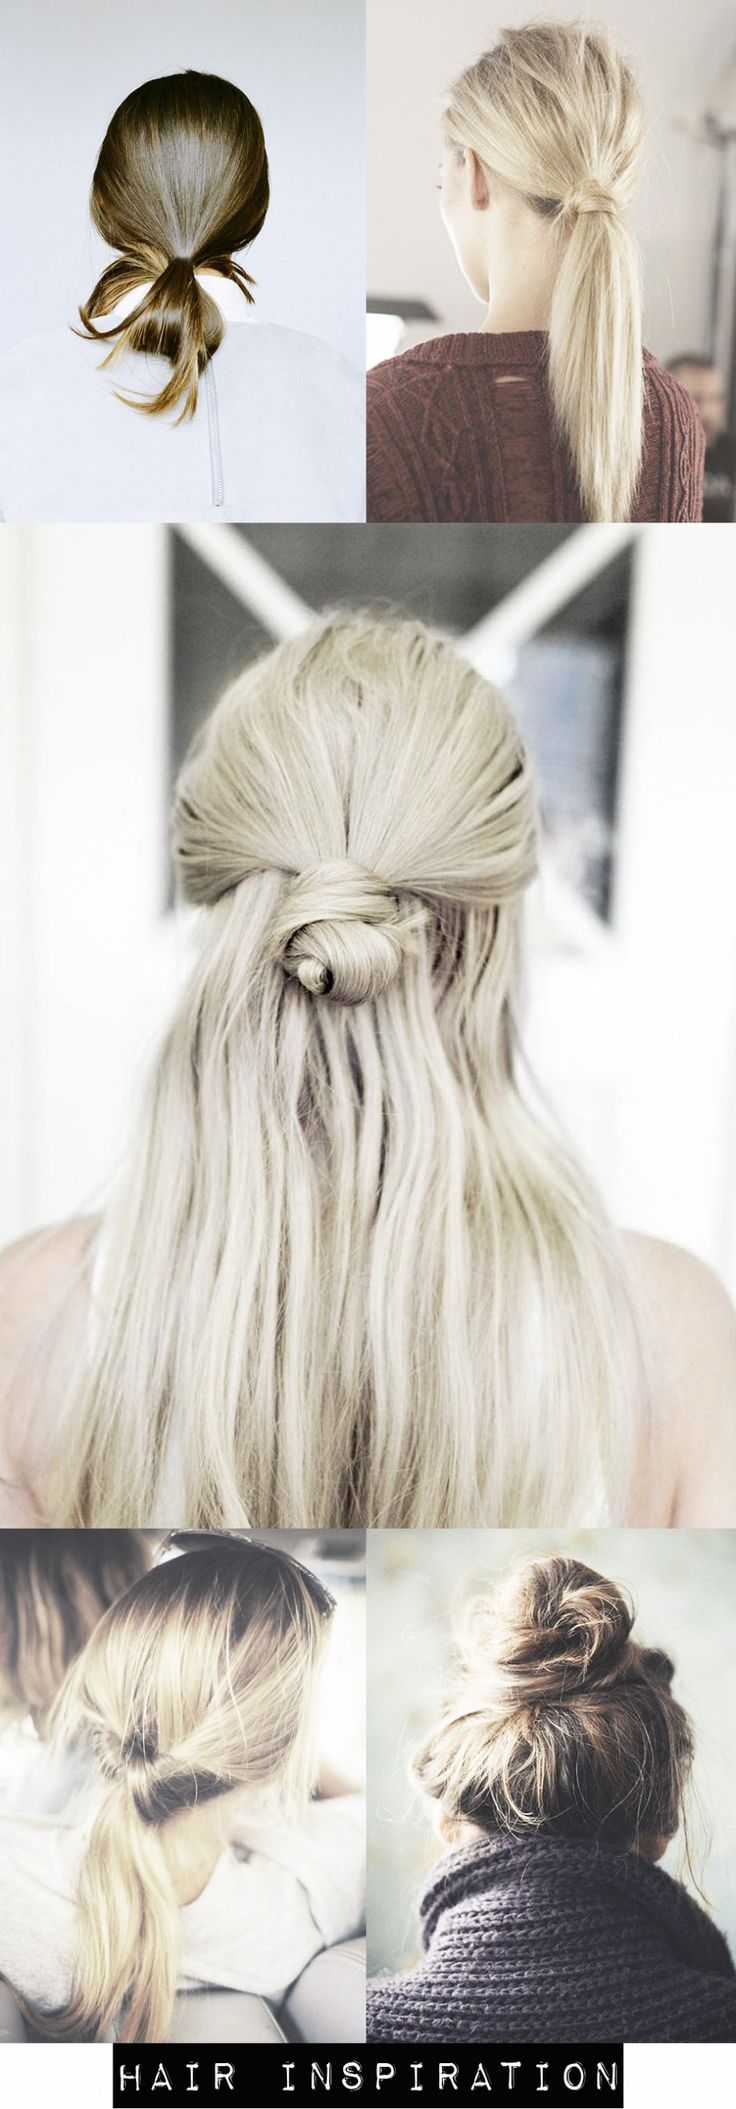 26 best Hair up dos images on Pinterest | Hairstyles, Hair and Braids